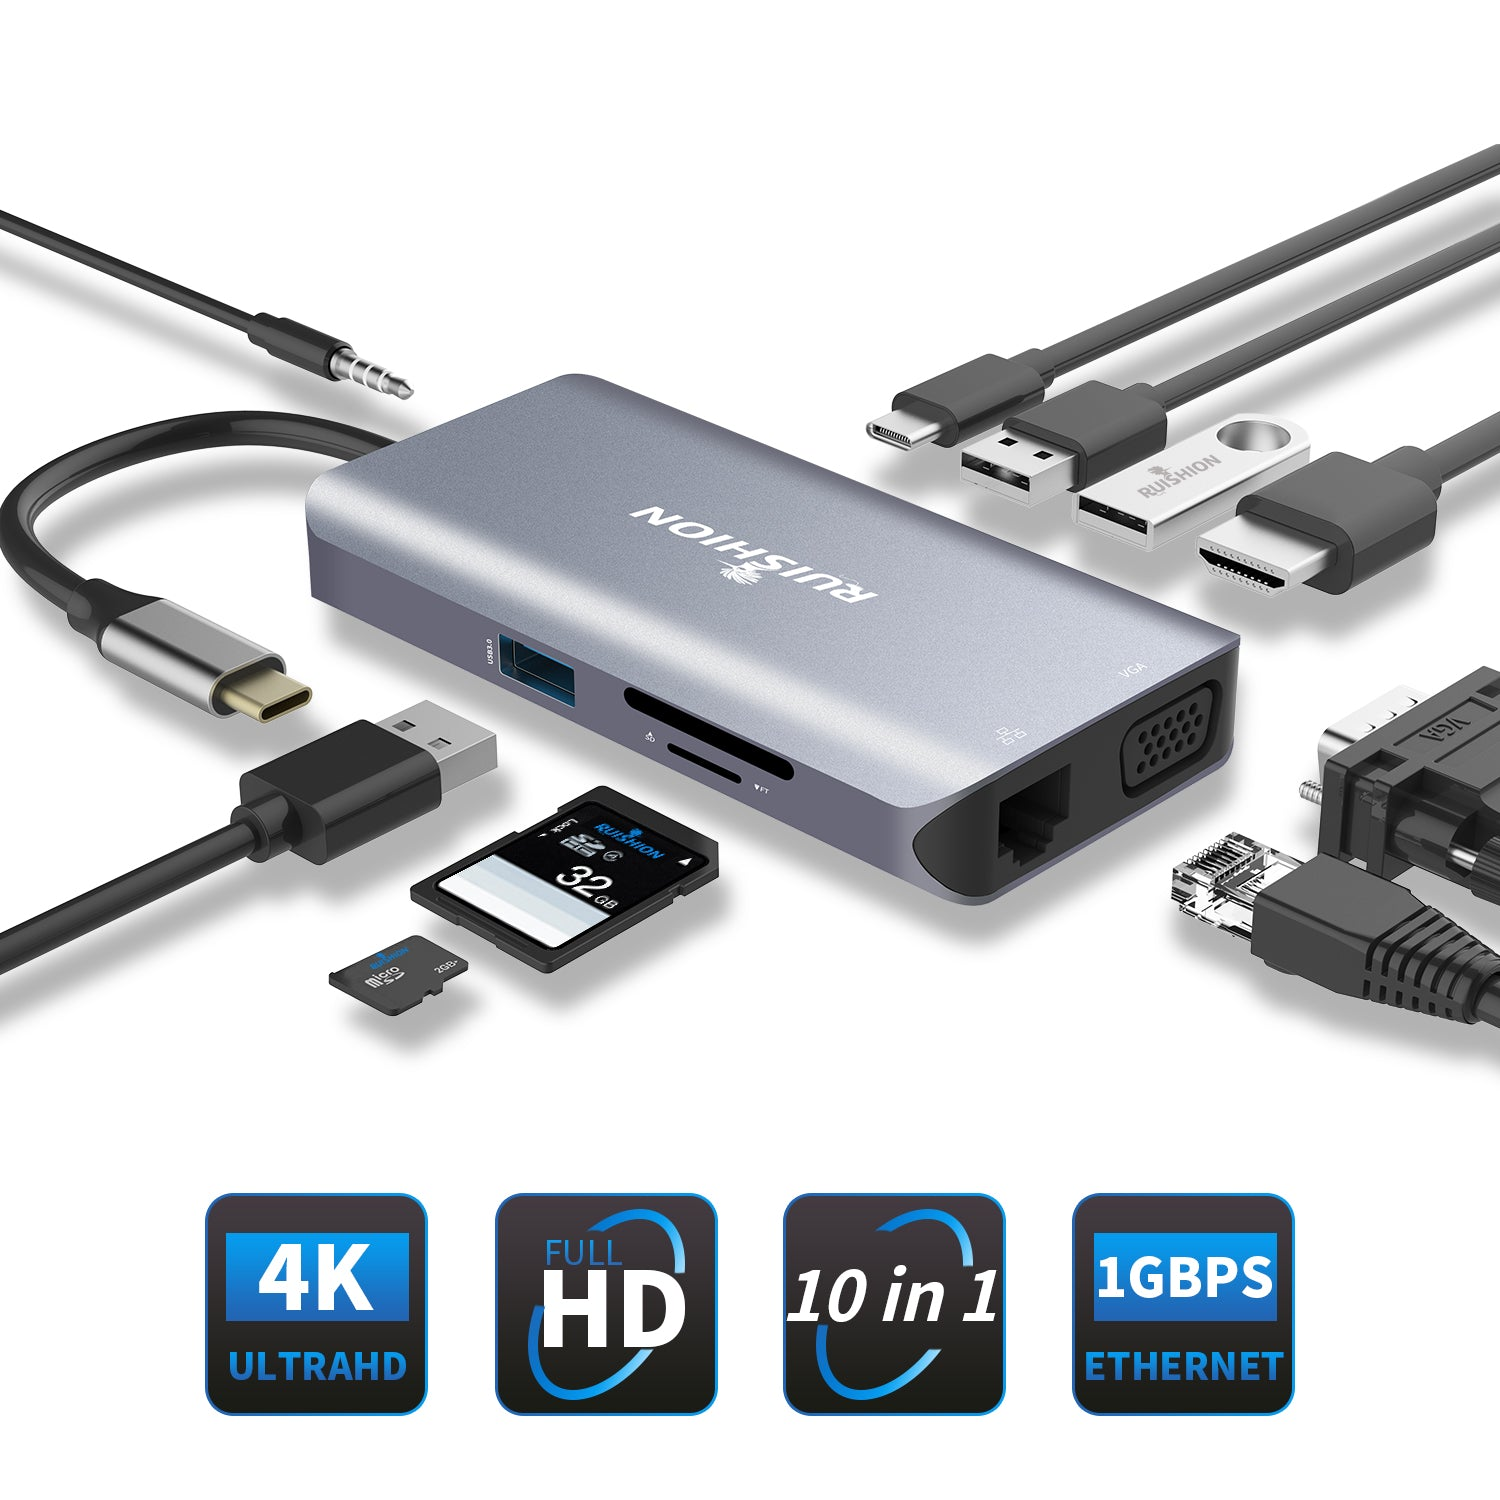 Type-C USB C To 4K HDMI USB 3.0 2.0 SD TF Card Reader PD Hub Adapter For Macbook